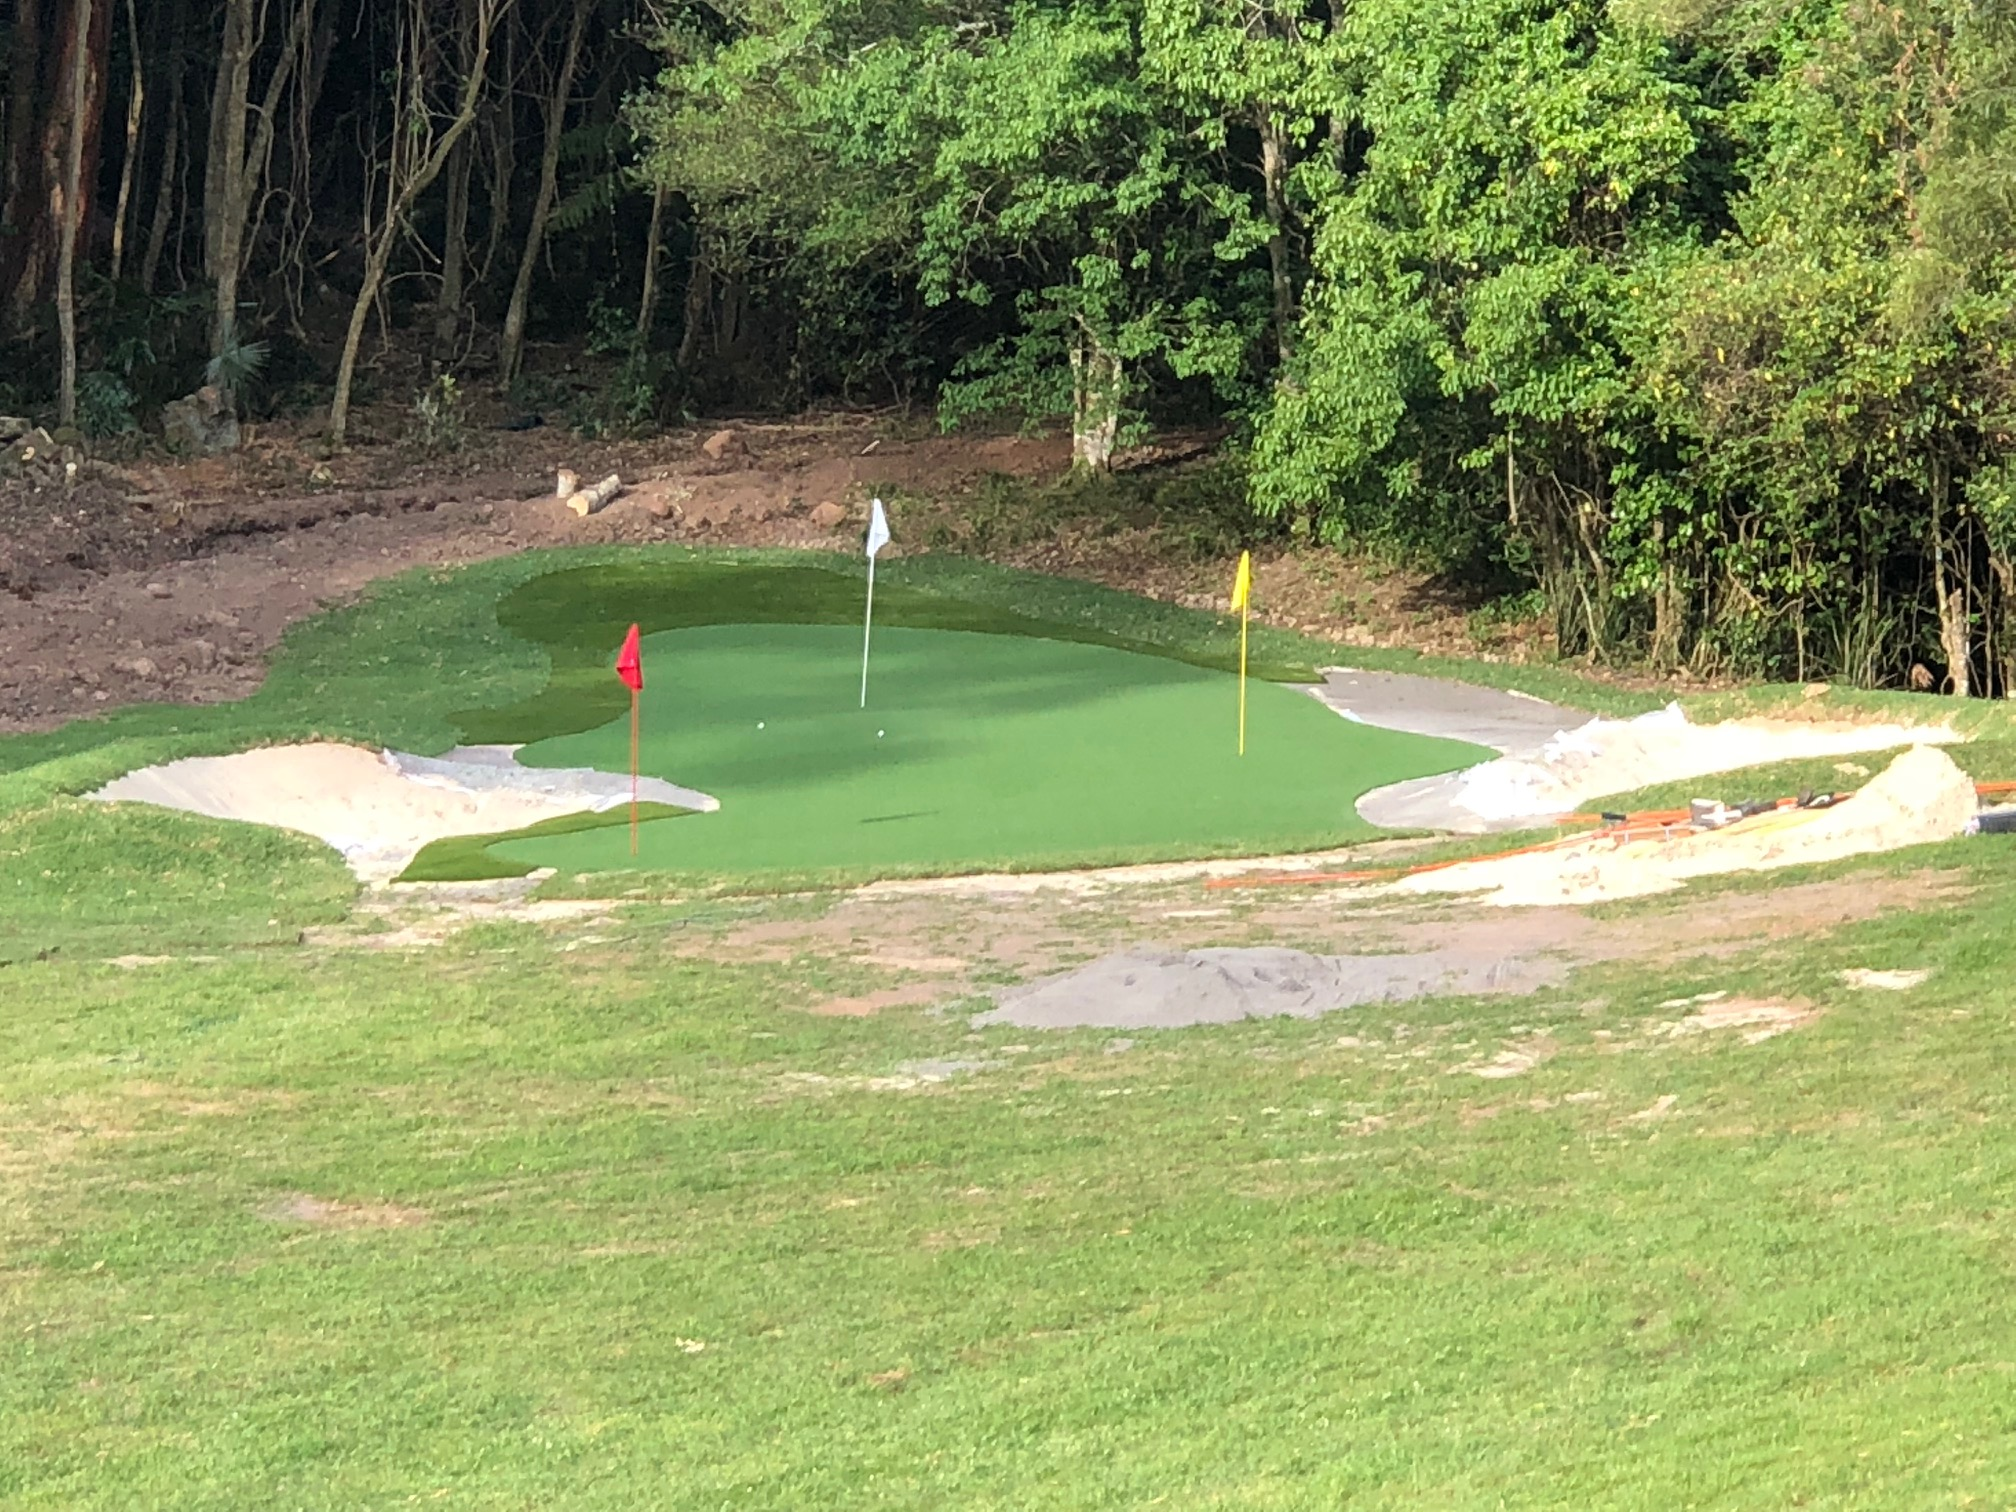 5 Steps to Getting Your Dream Golf Green